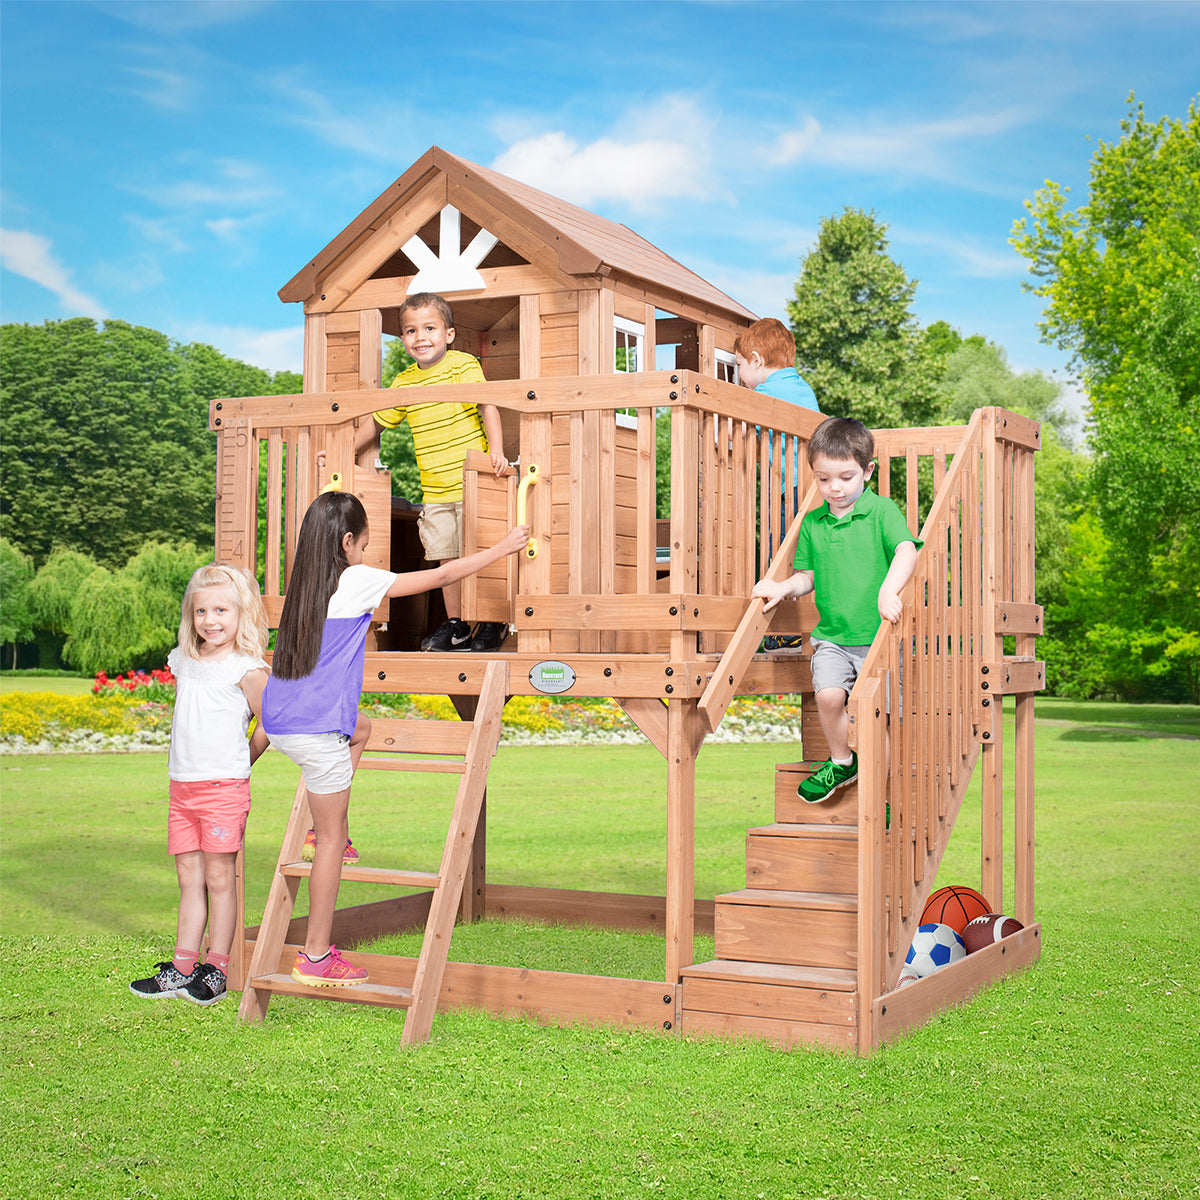 Backyard Discovery Scenic Heights Cubby House image